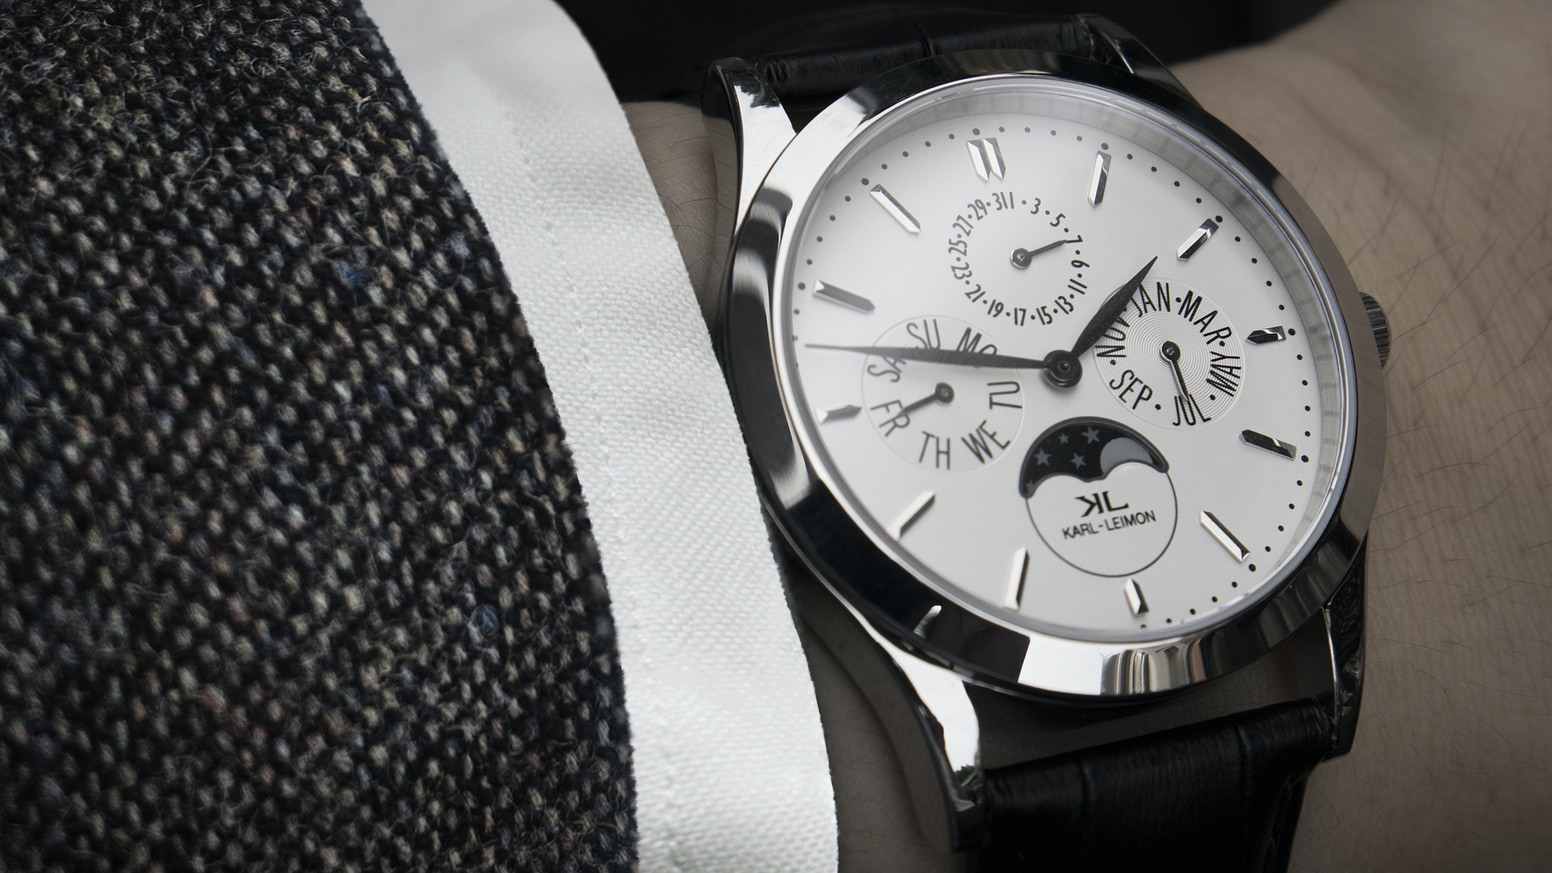 Capture the sleek style of a classic moonphase watch at an affordable price. - KARLLEIMON